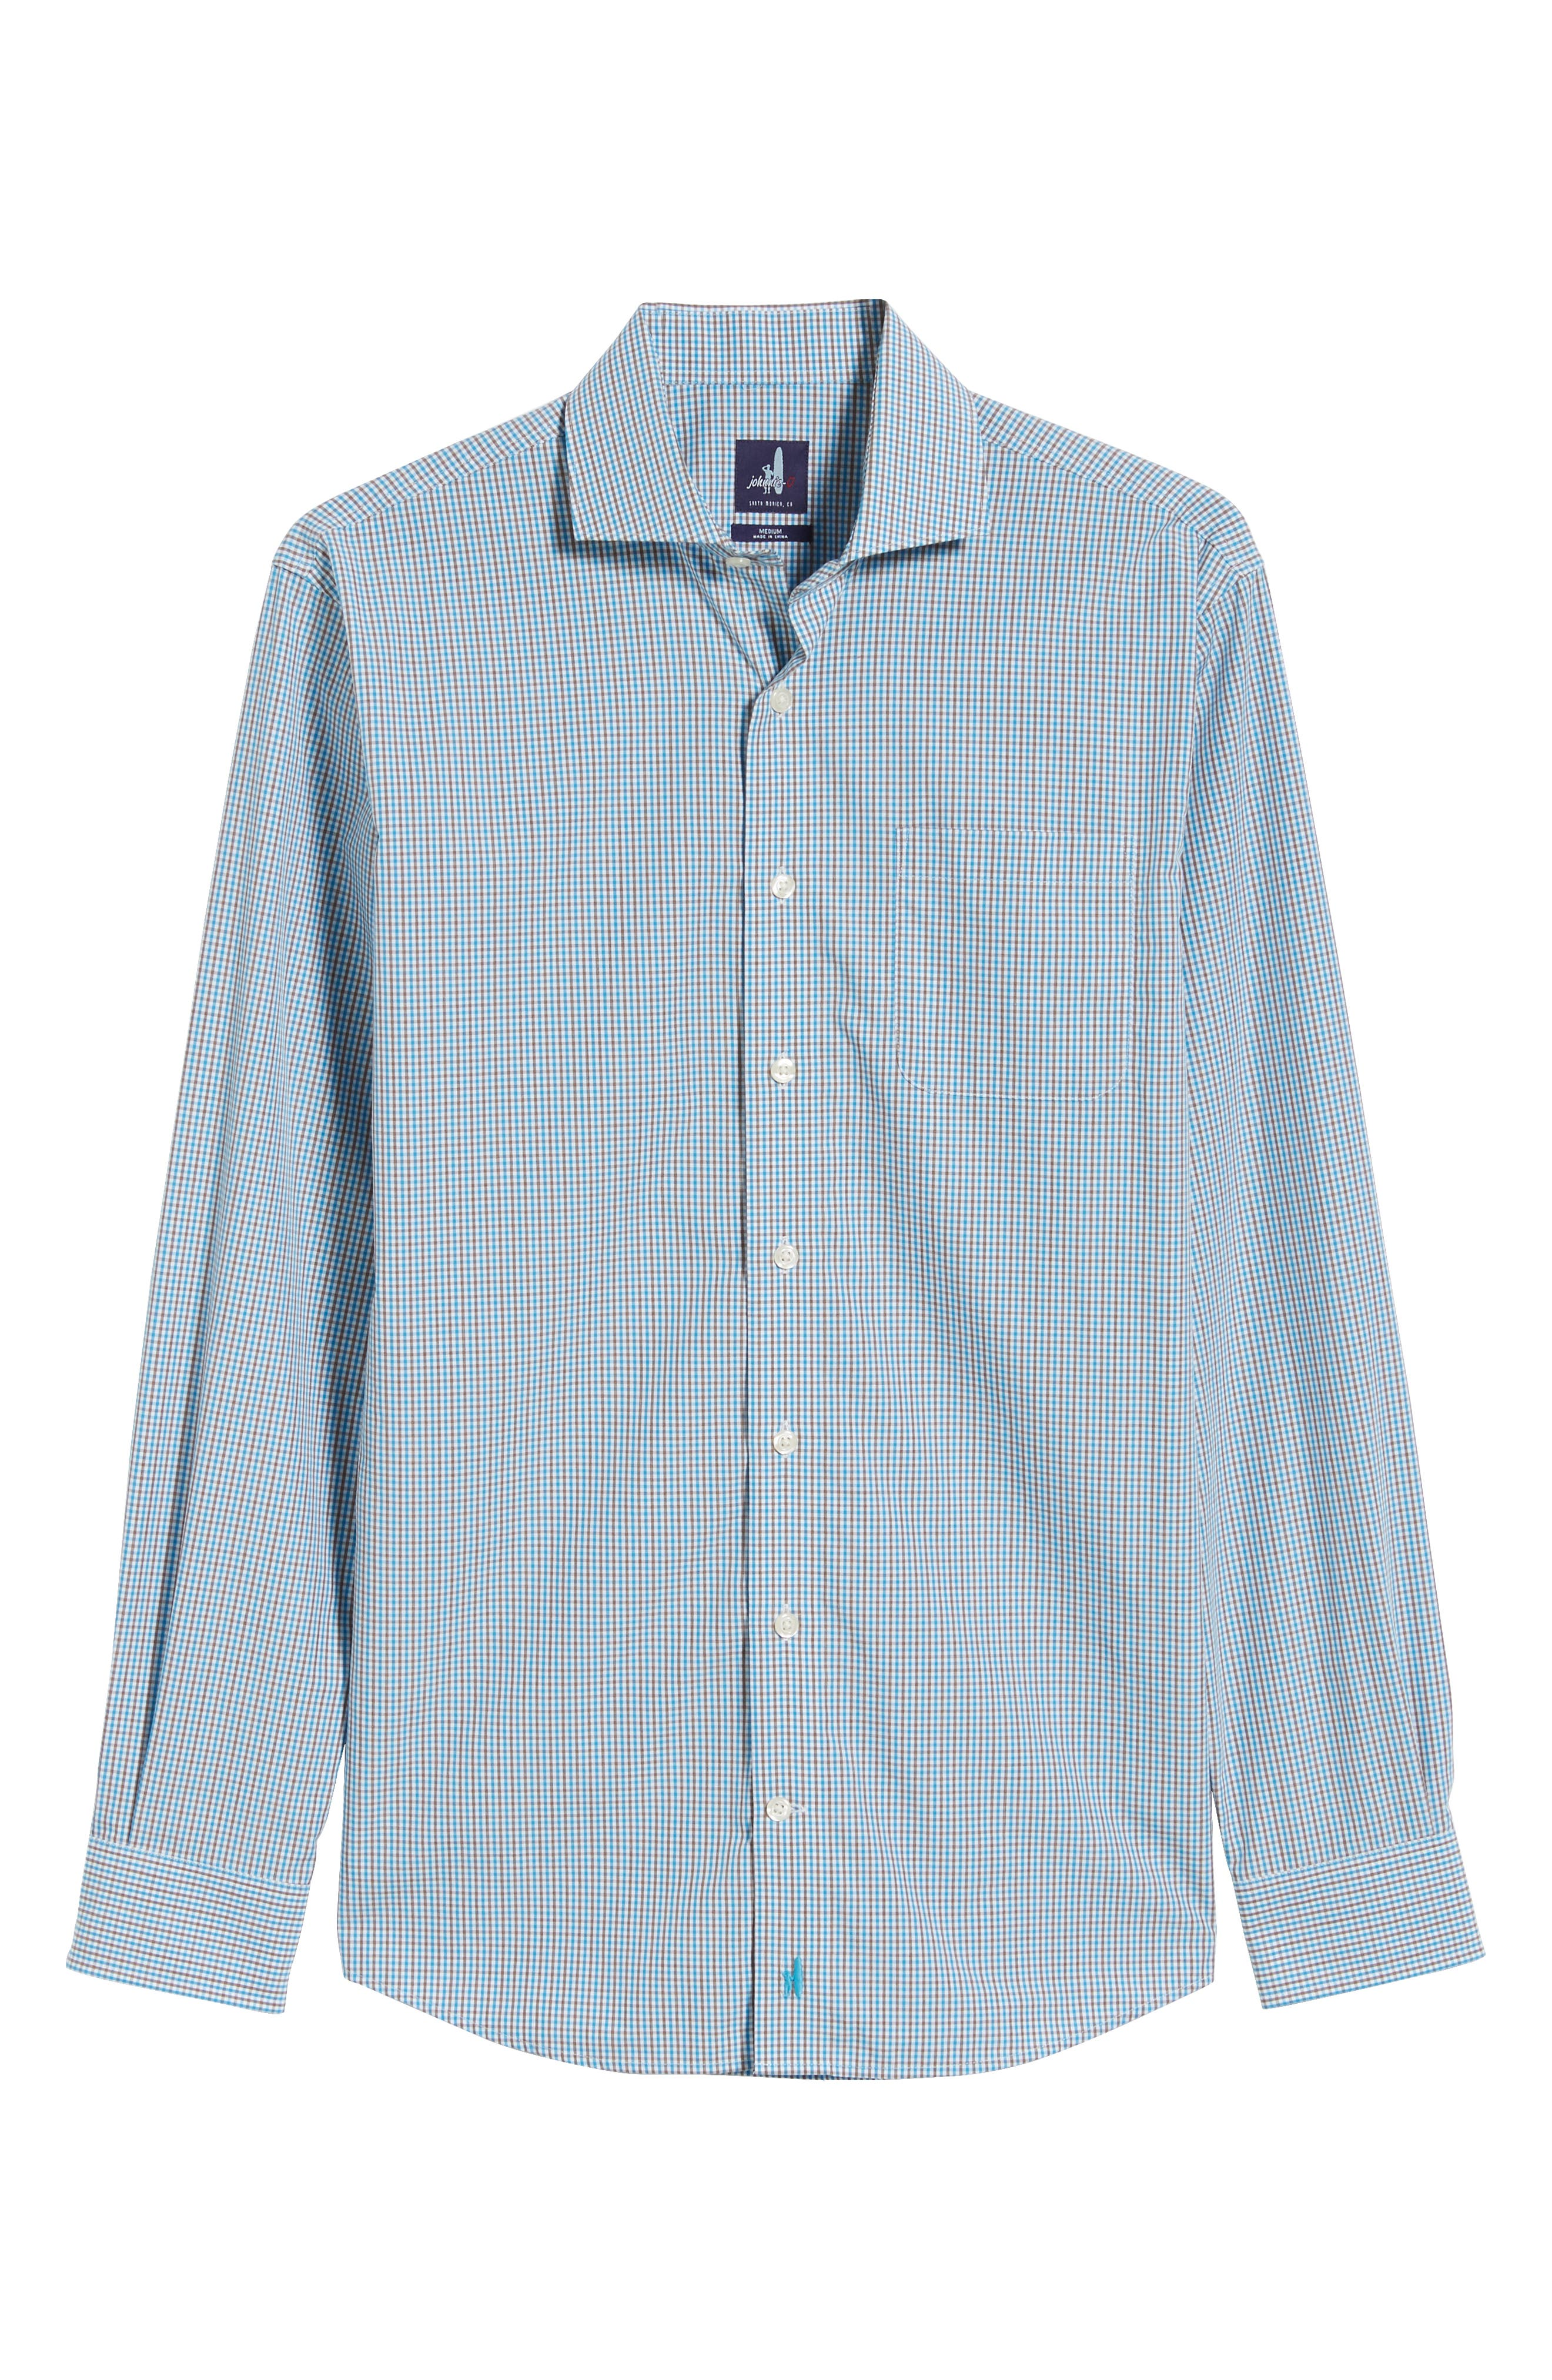 JOHNNIE-O,                             Douglas Classic Fit Sport Shirt,                             Alternate thumbnail 5, color,                             434